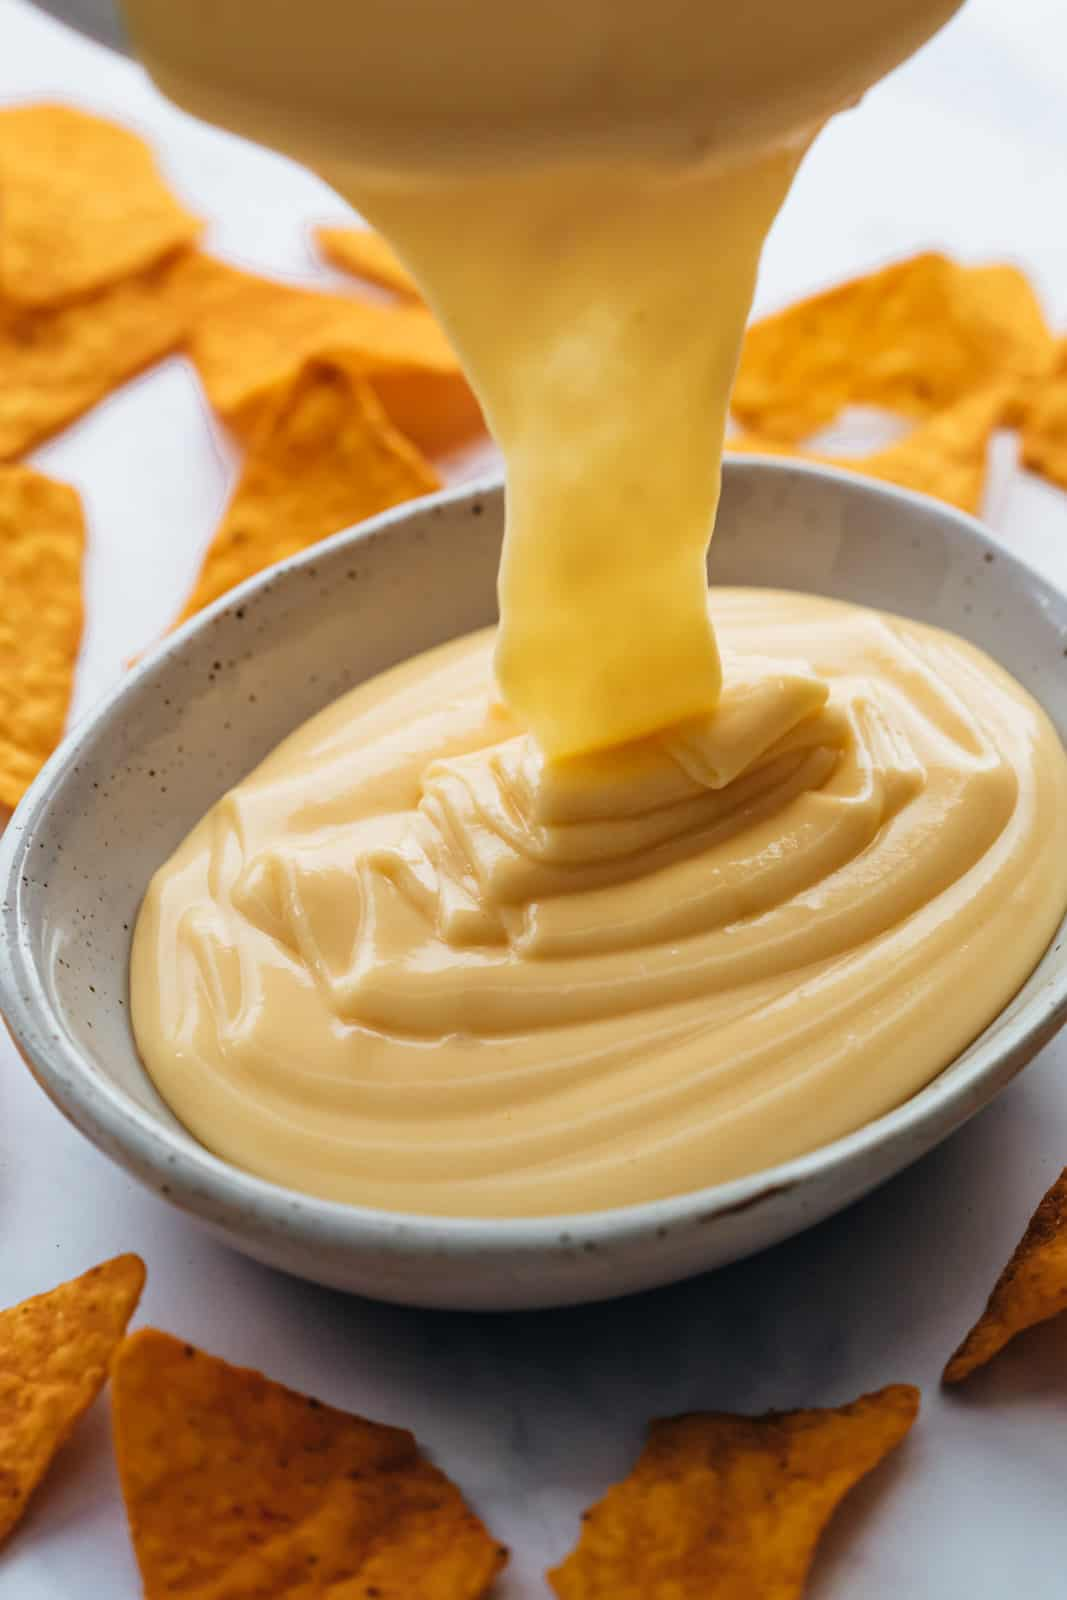 Pouring nacho cheese sauce into a serving dip bowl